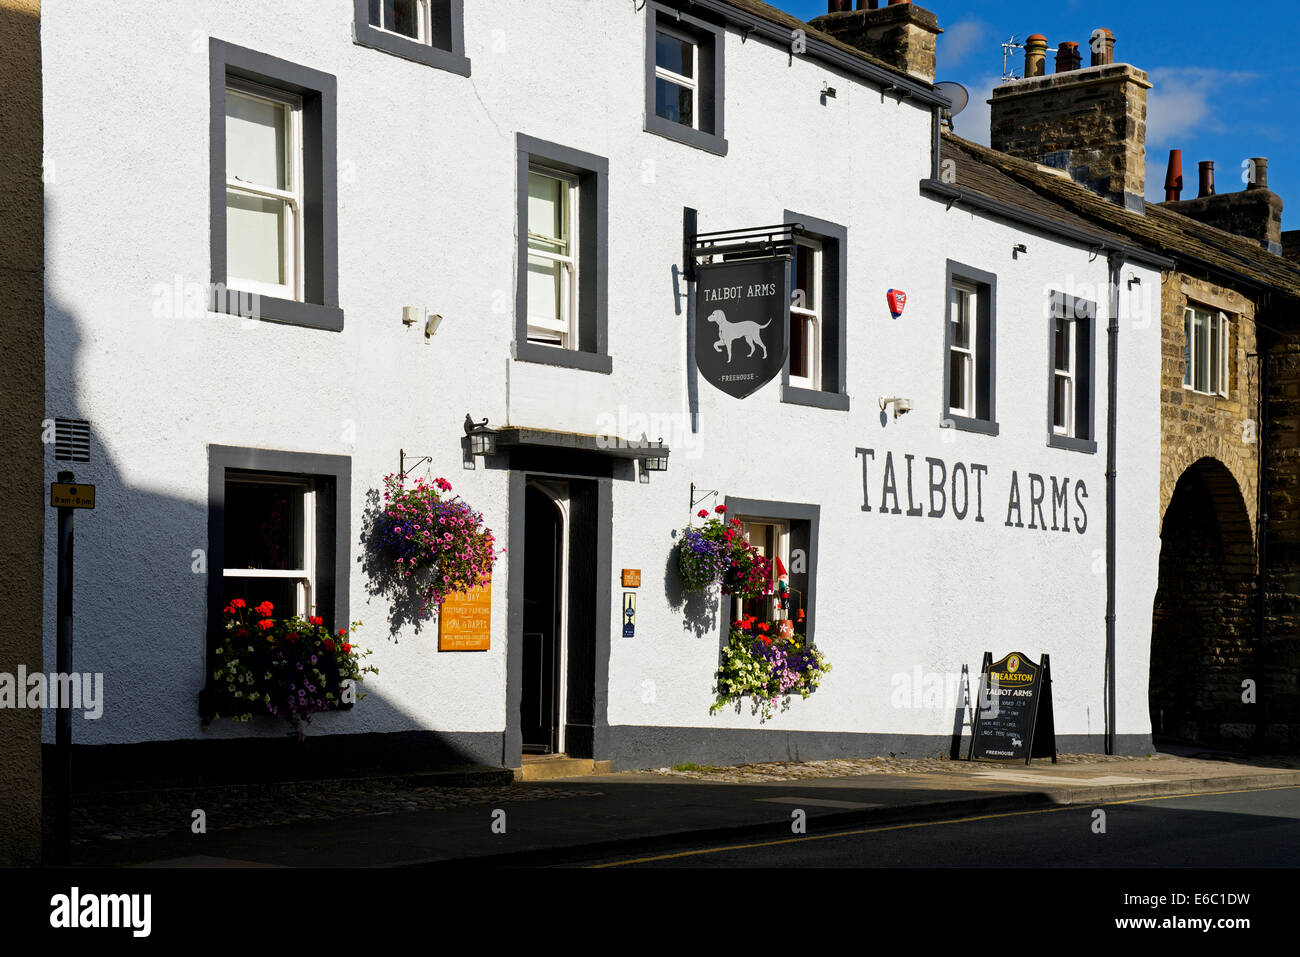 The Talbot Arms, Settle, North Yorkshire, England UK - Stock Image